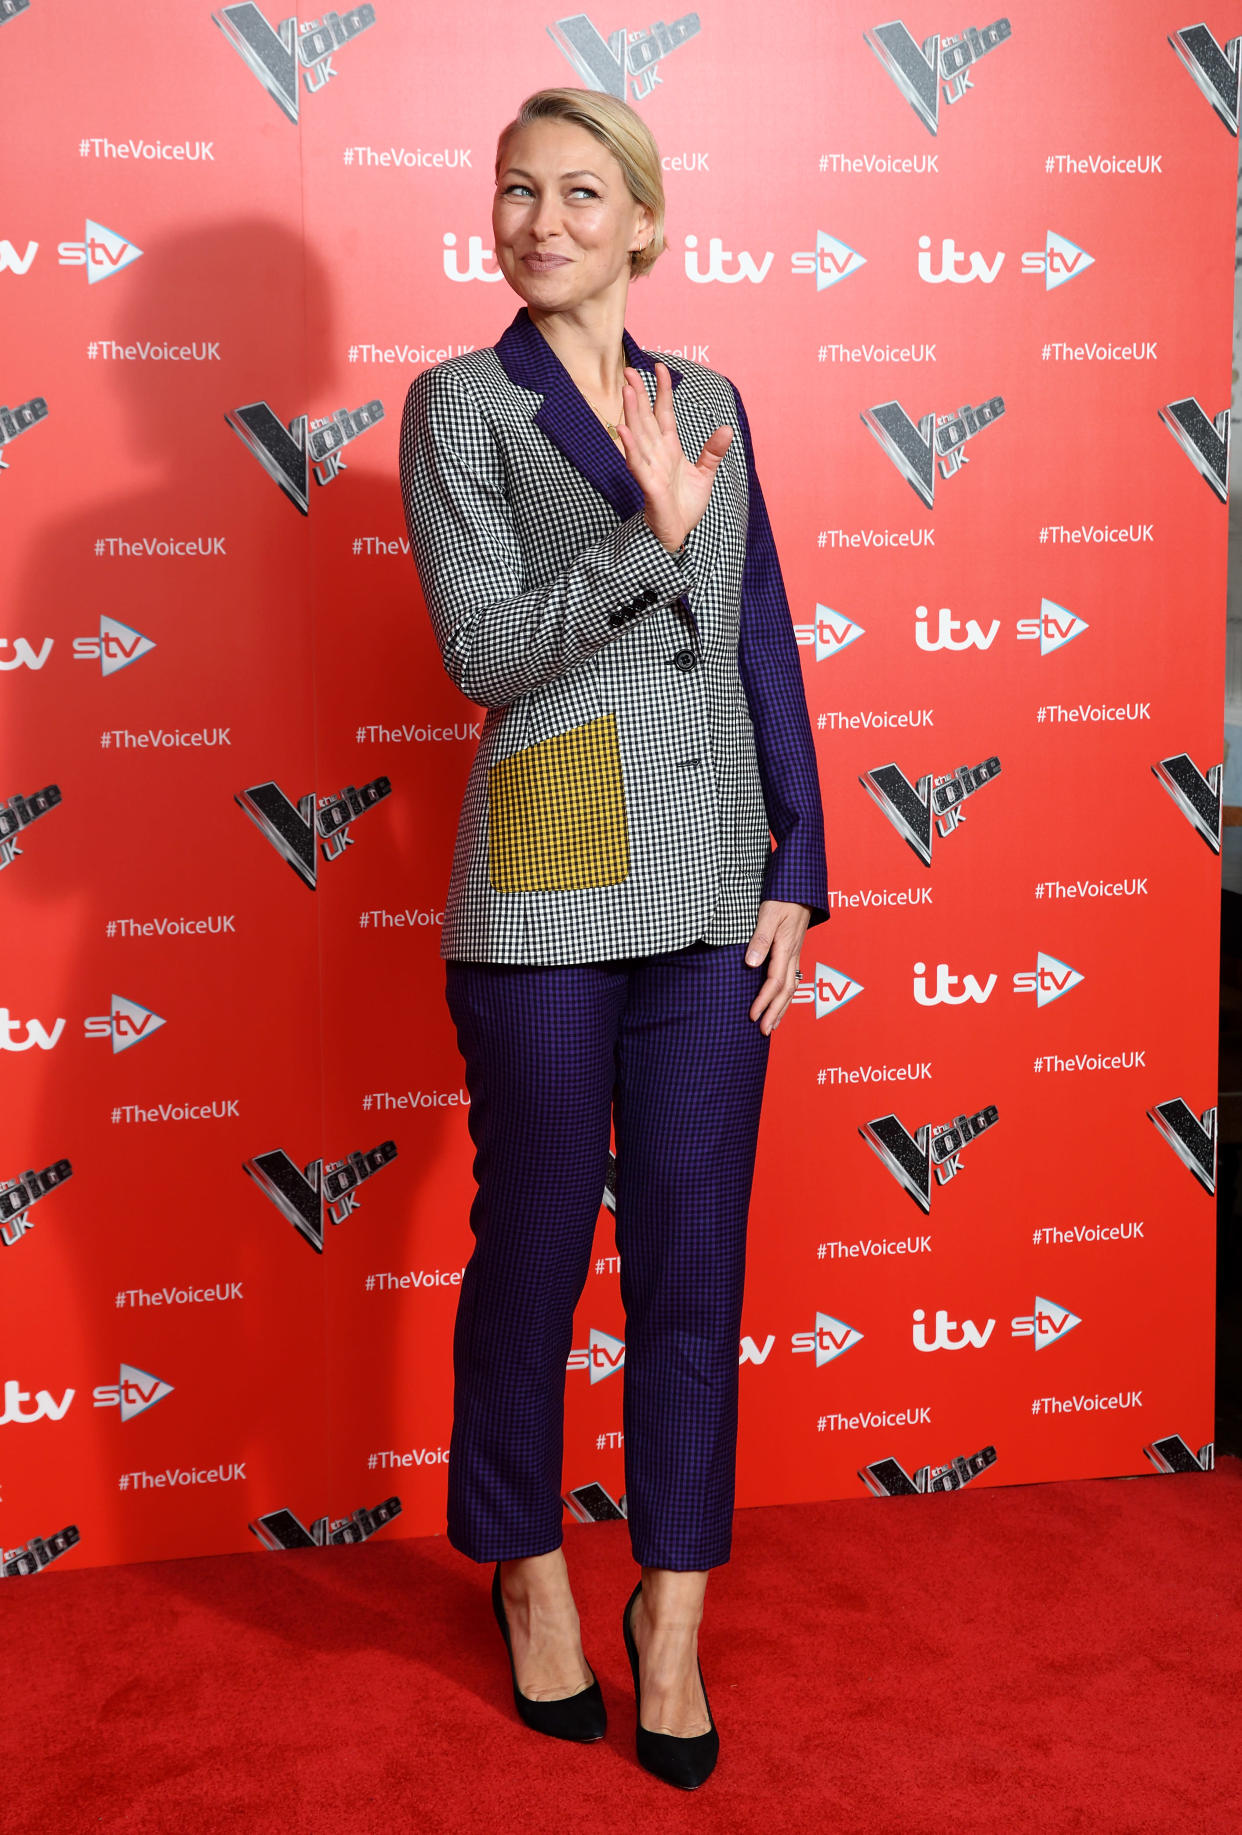 Emma Willis is often filming for other shows while 'Strictly' takes place. (Photo by Karwai Tang/WireImage)